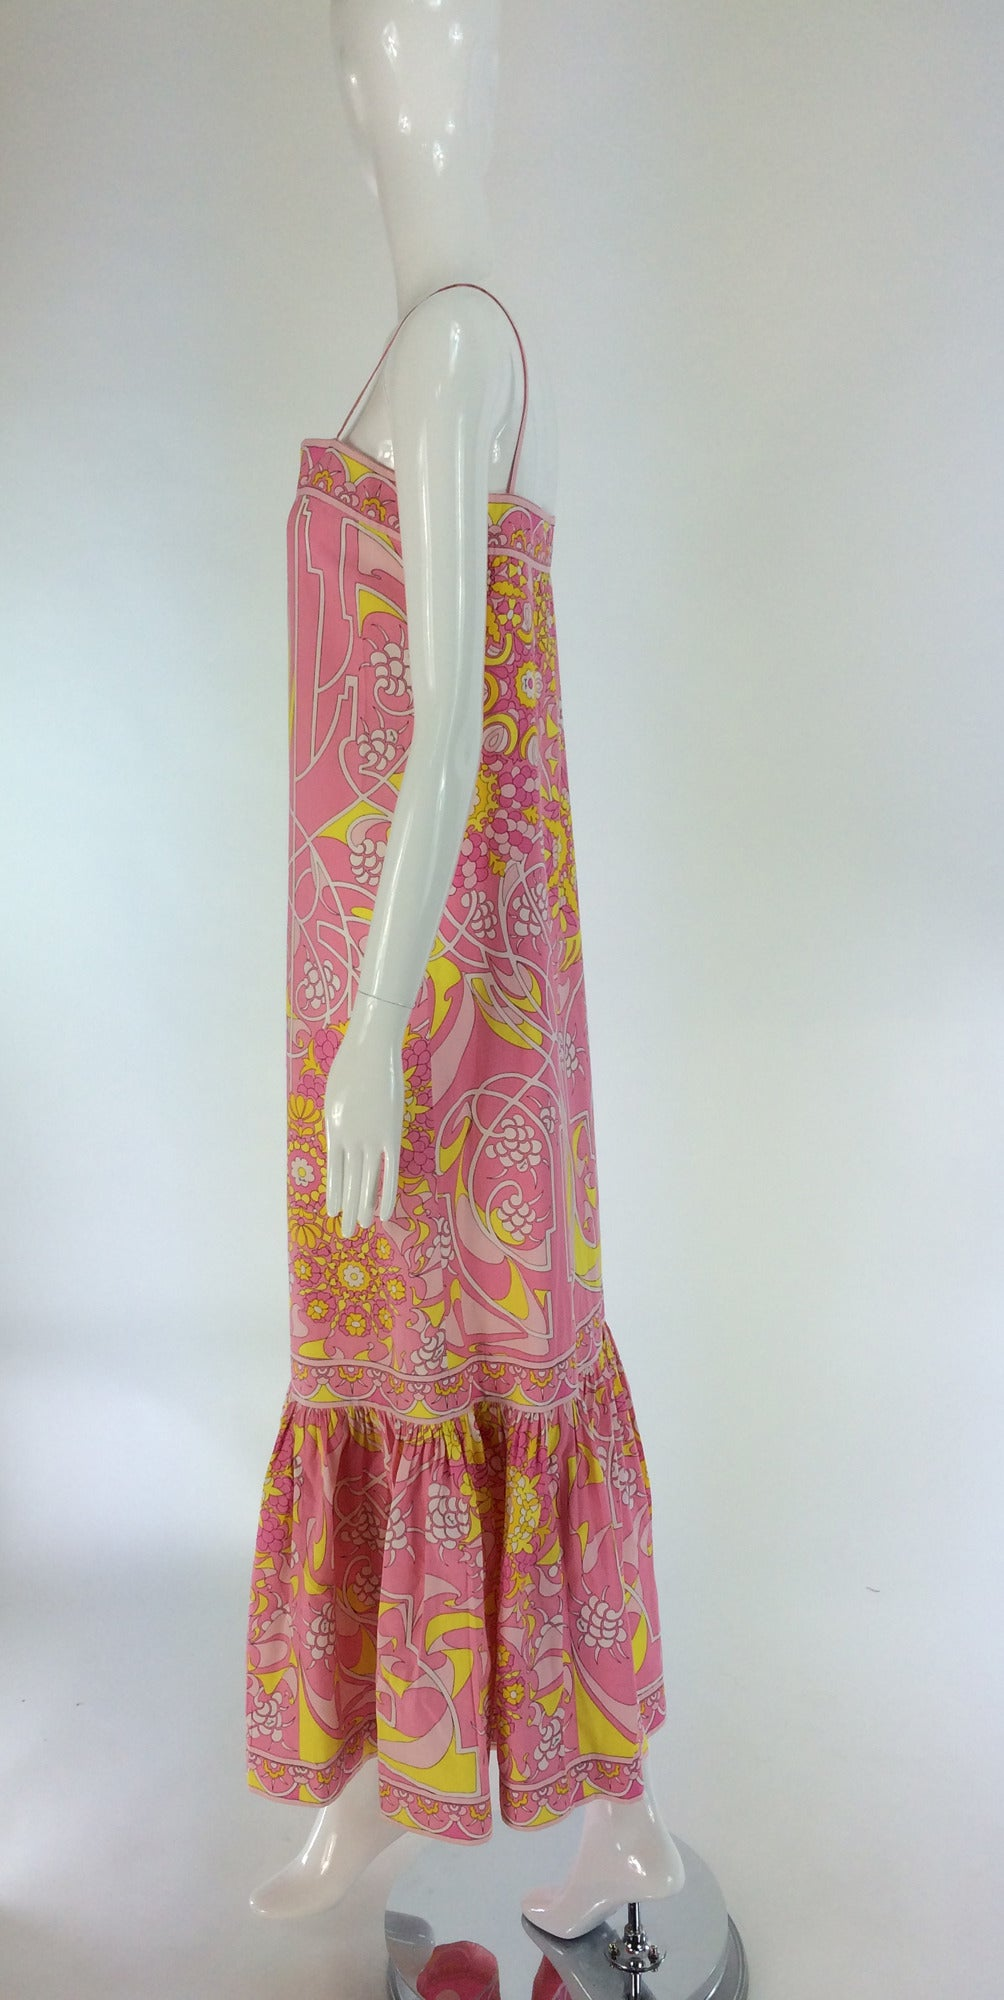 Emilio Pucci printed cotton maxi dress out of the ordinary design 1960s 9